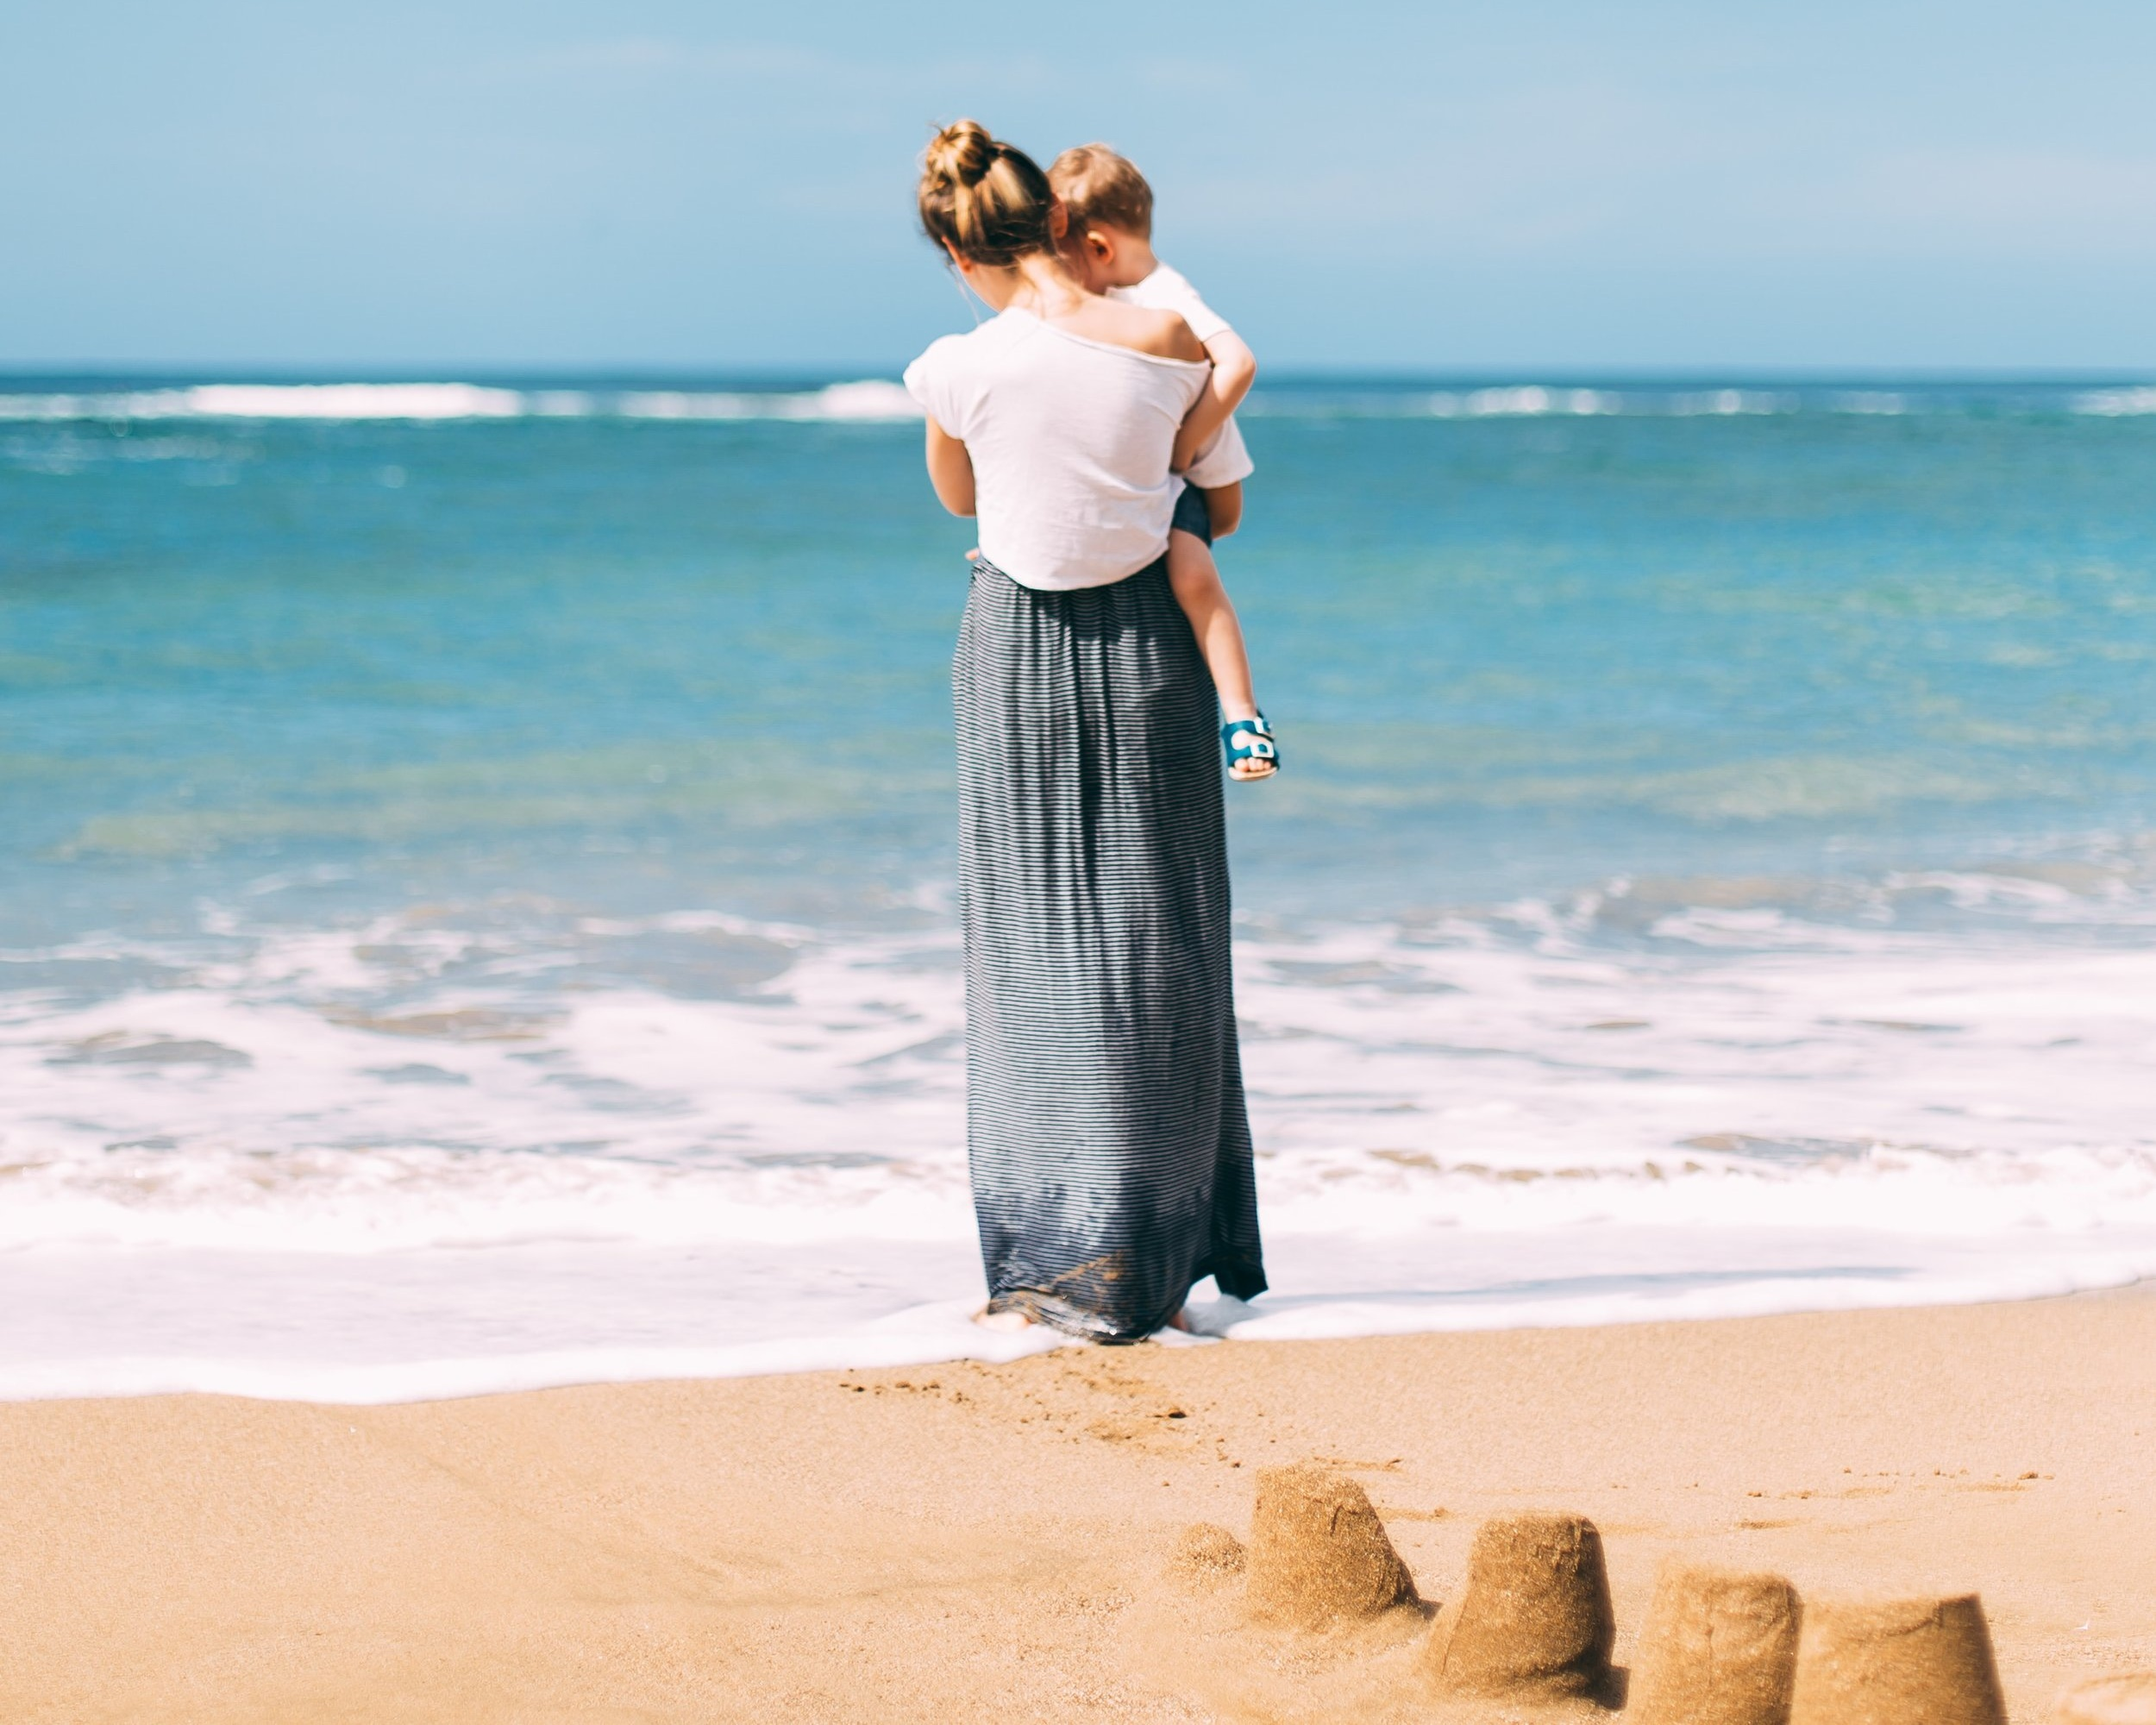 The Best Suncreams For You and Your Family